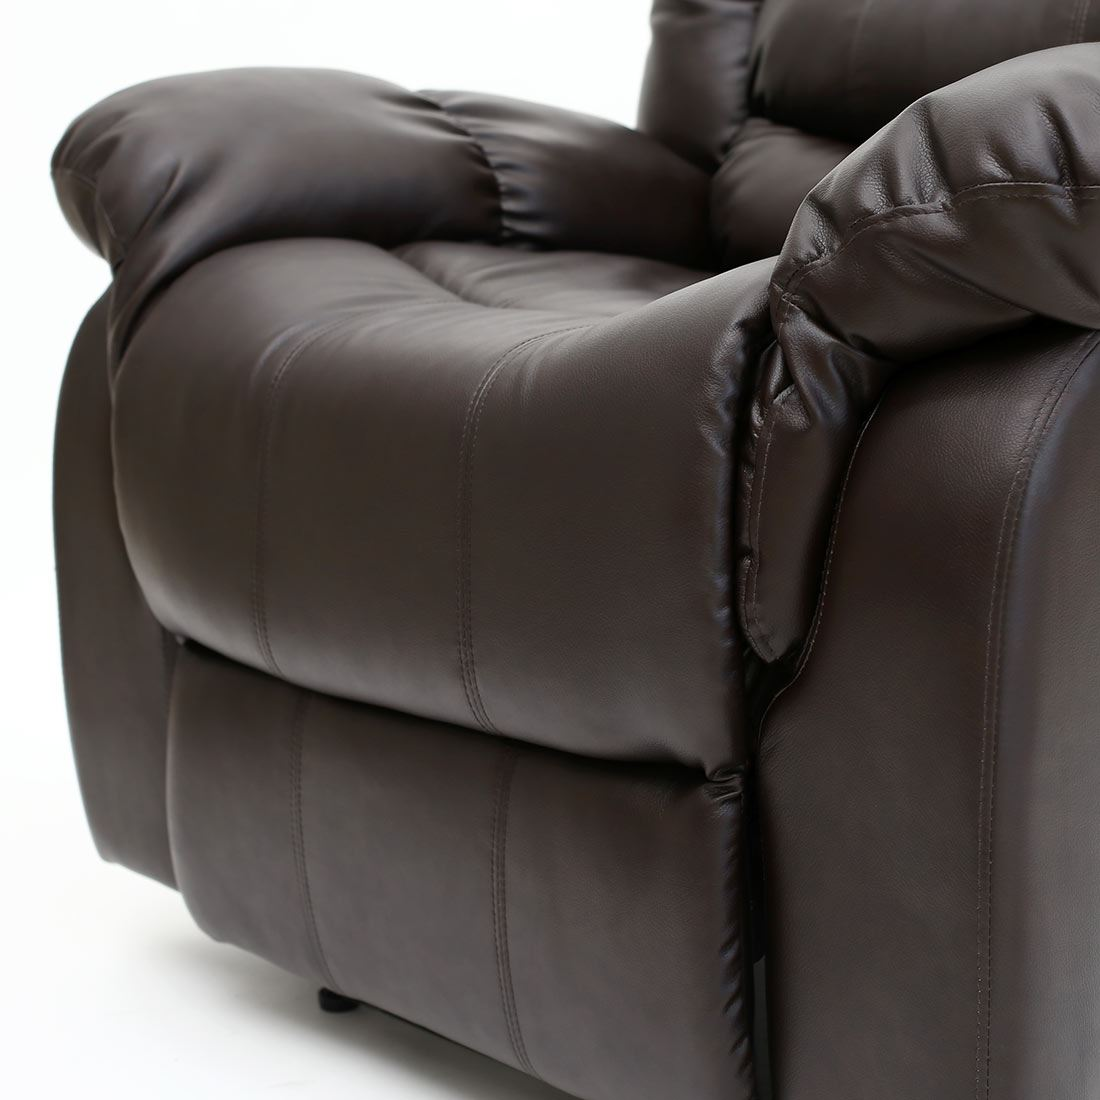 gaming lounge chair high back office seattle leather recliner armchair sofa home